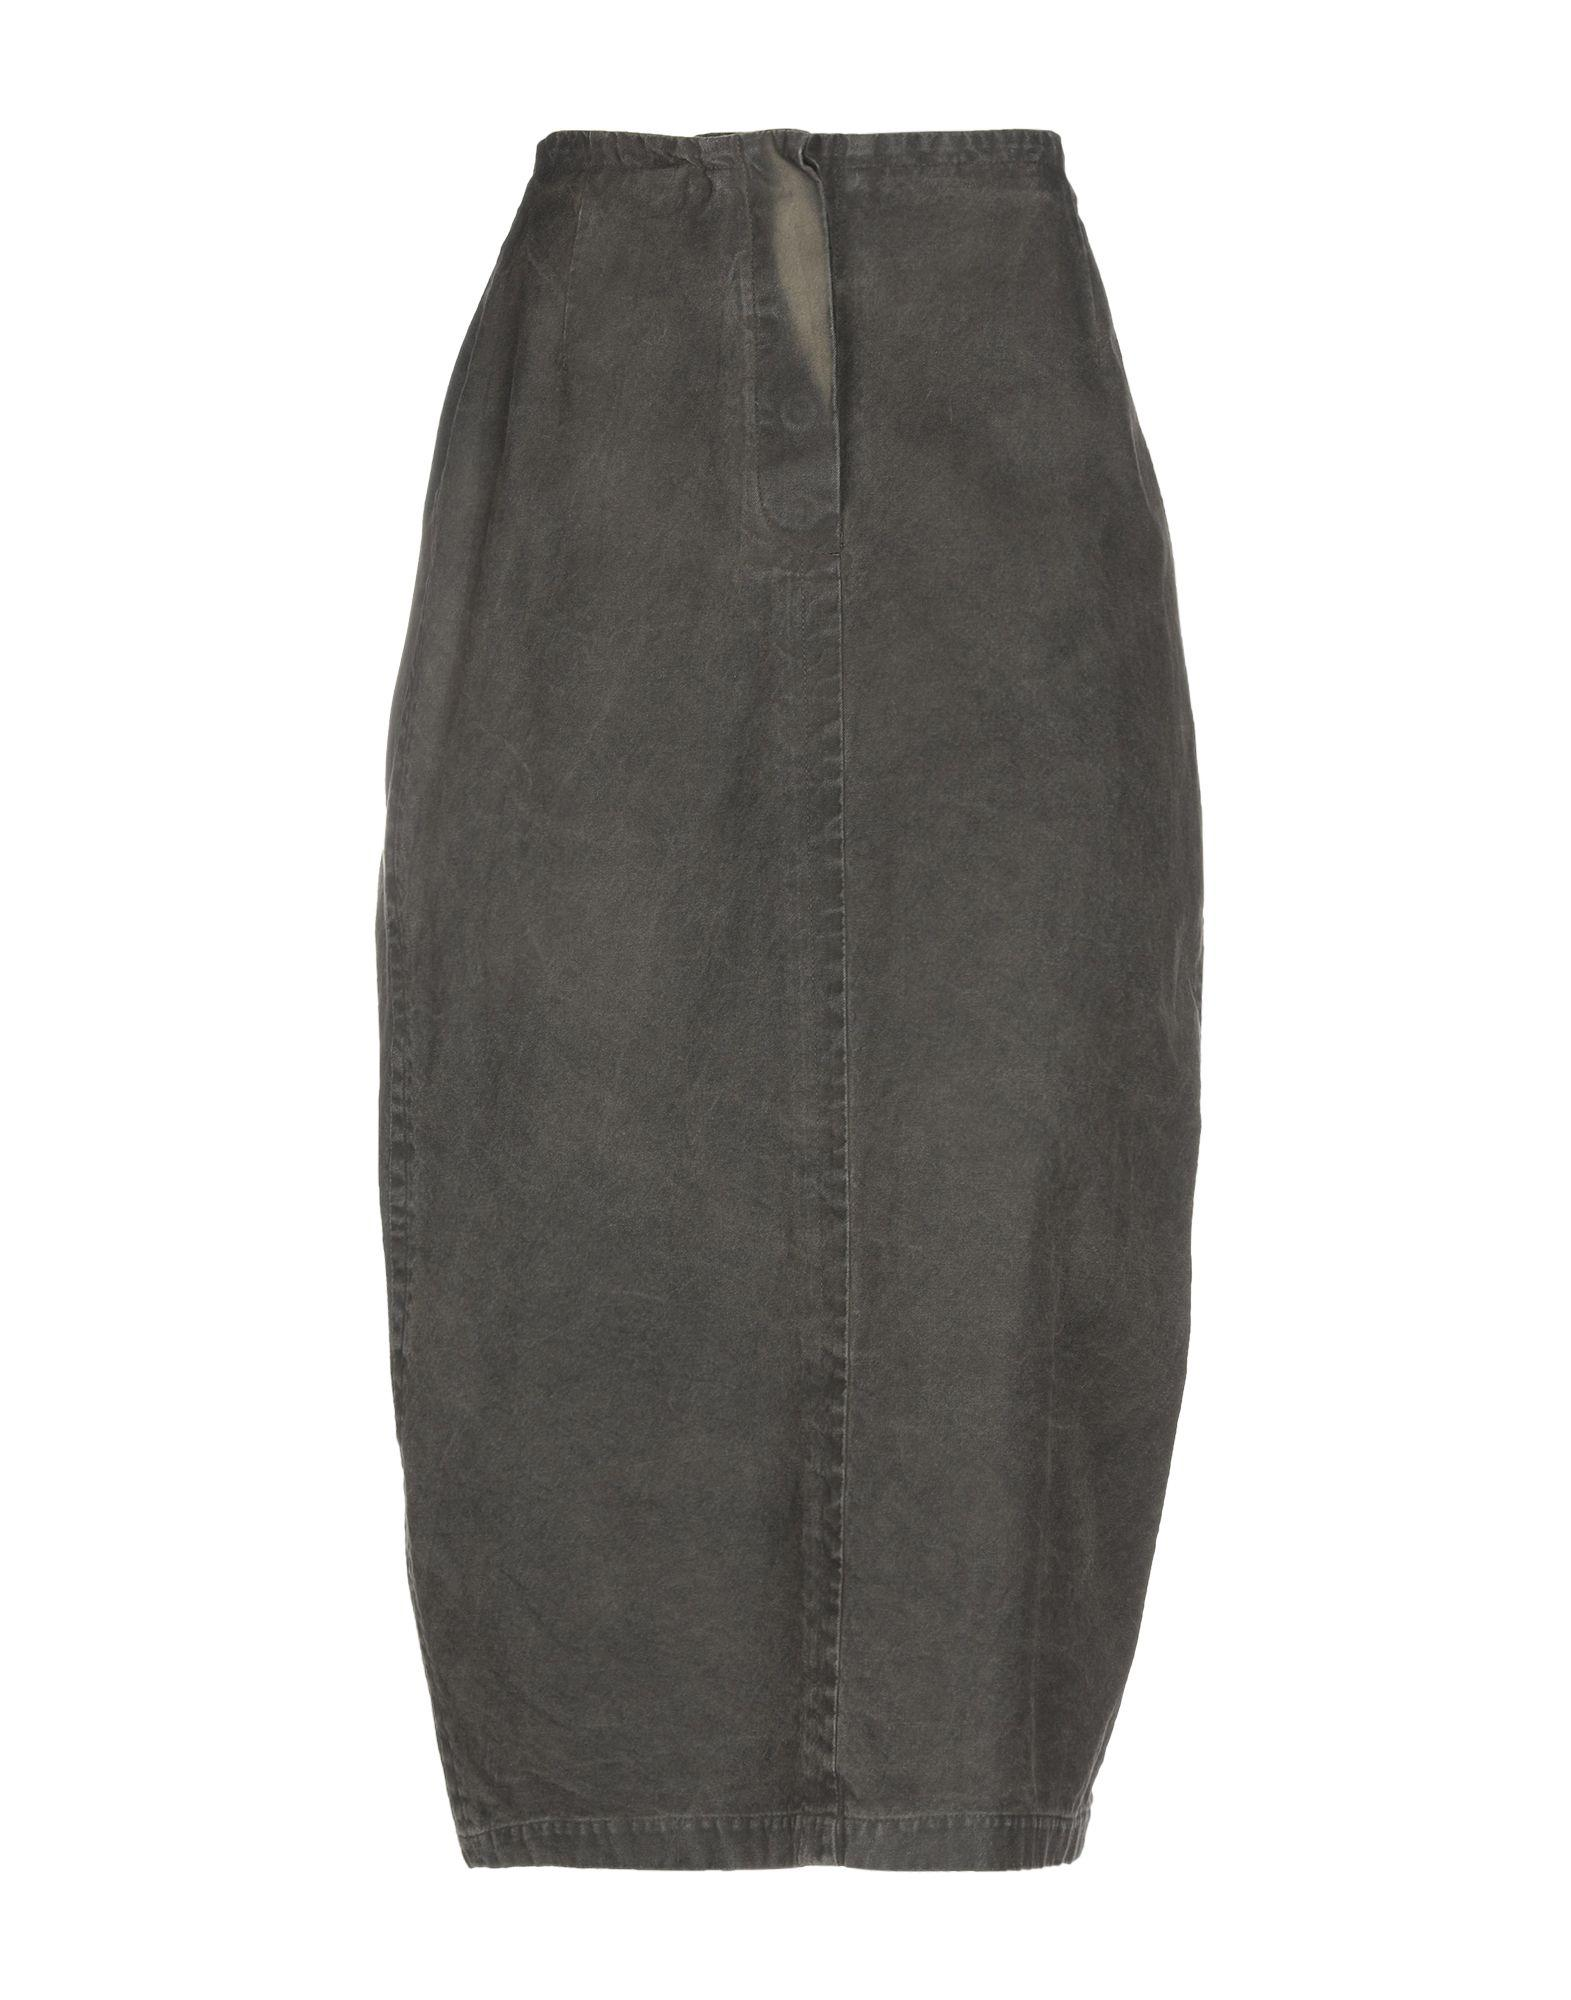 69f0cbddd Lyst - Rundholz Denim Skirt in Green